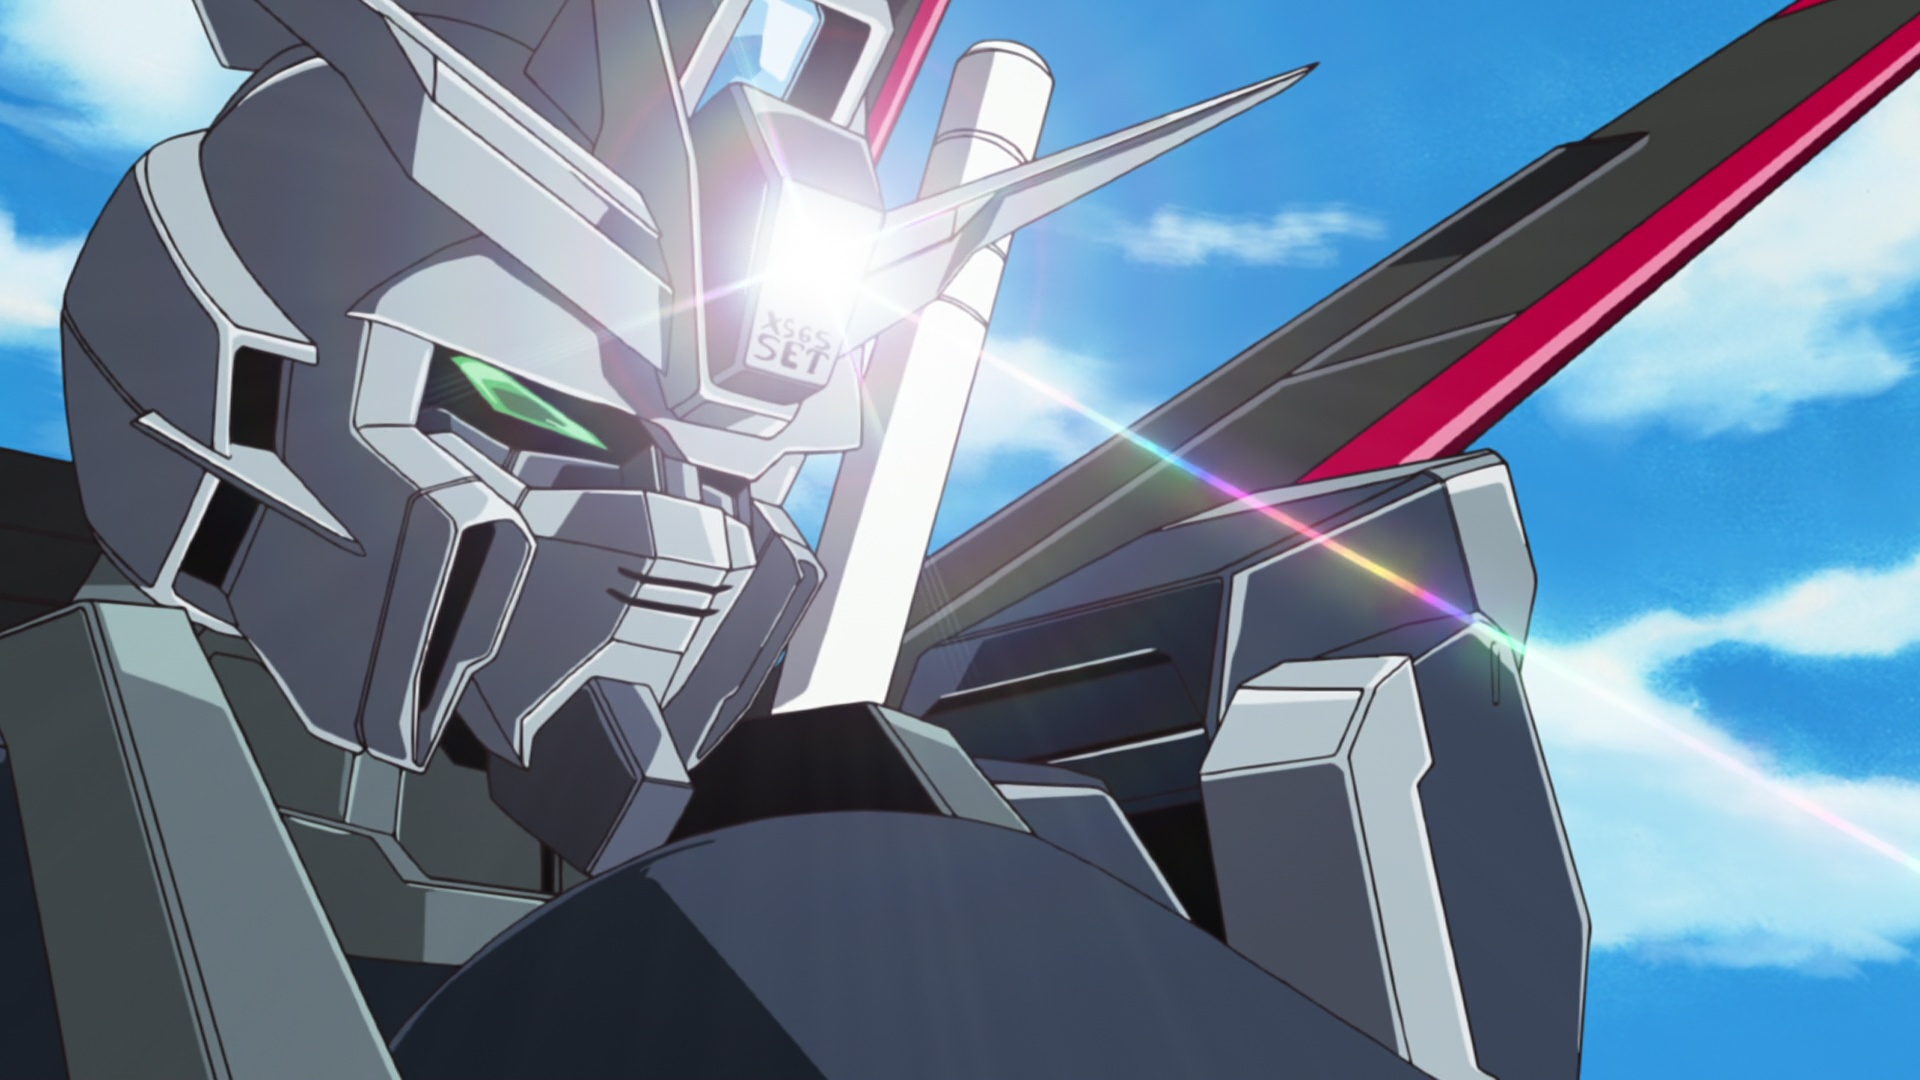 File:Deuterion Beam Energy Transfer - Impulse Gundam.jpg